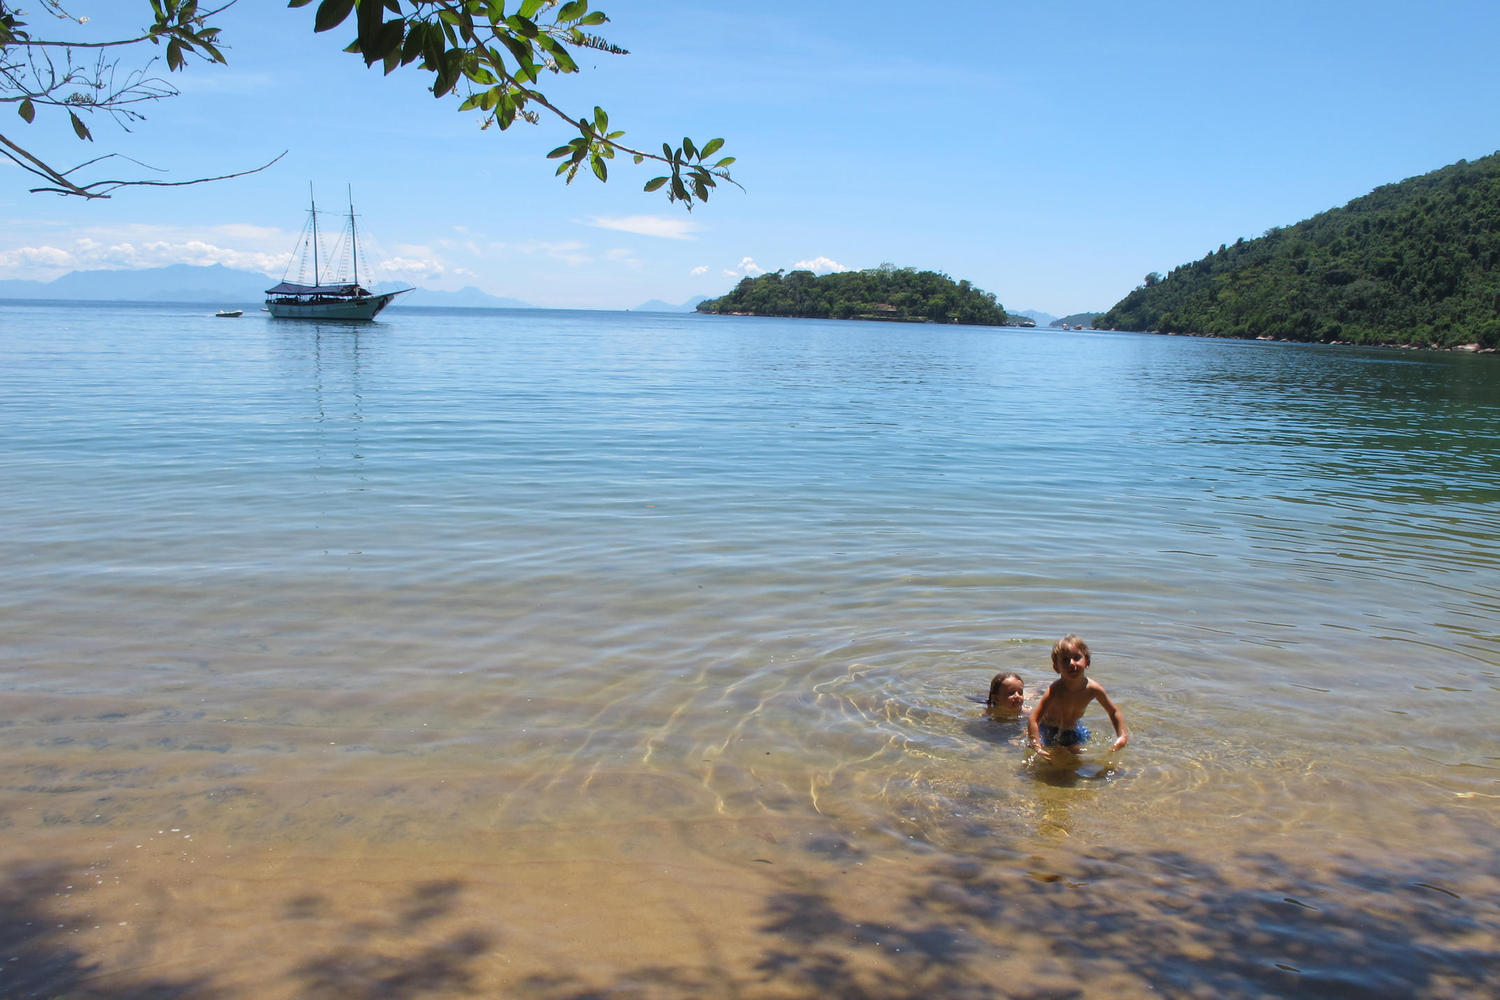 Beaches which are great for small kids to play